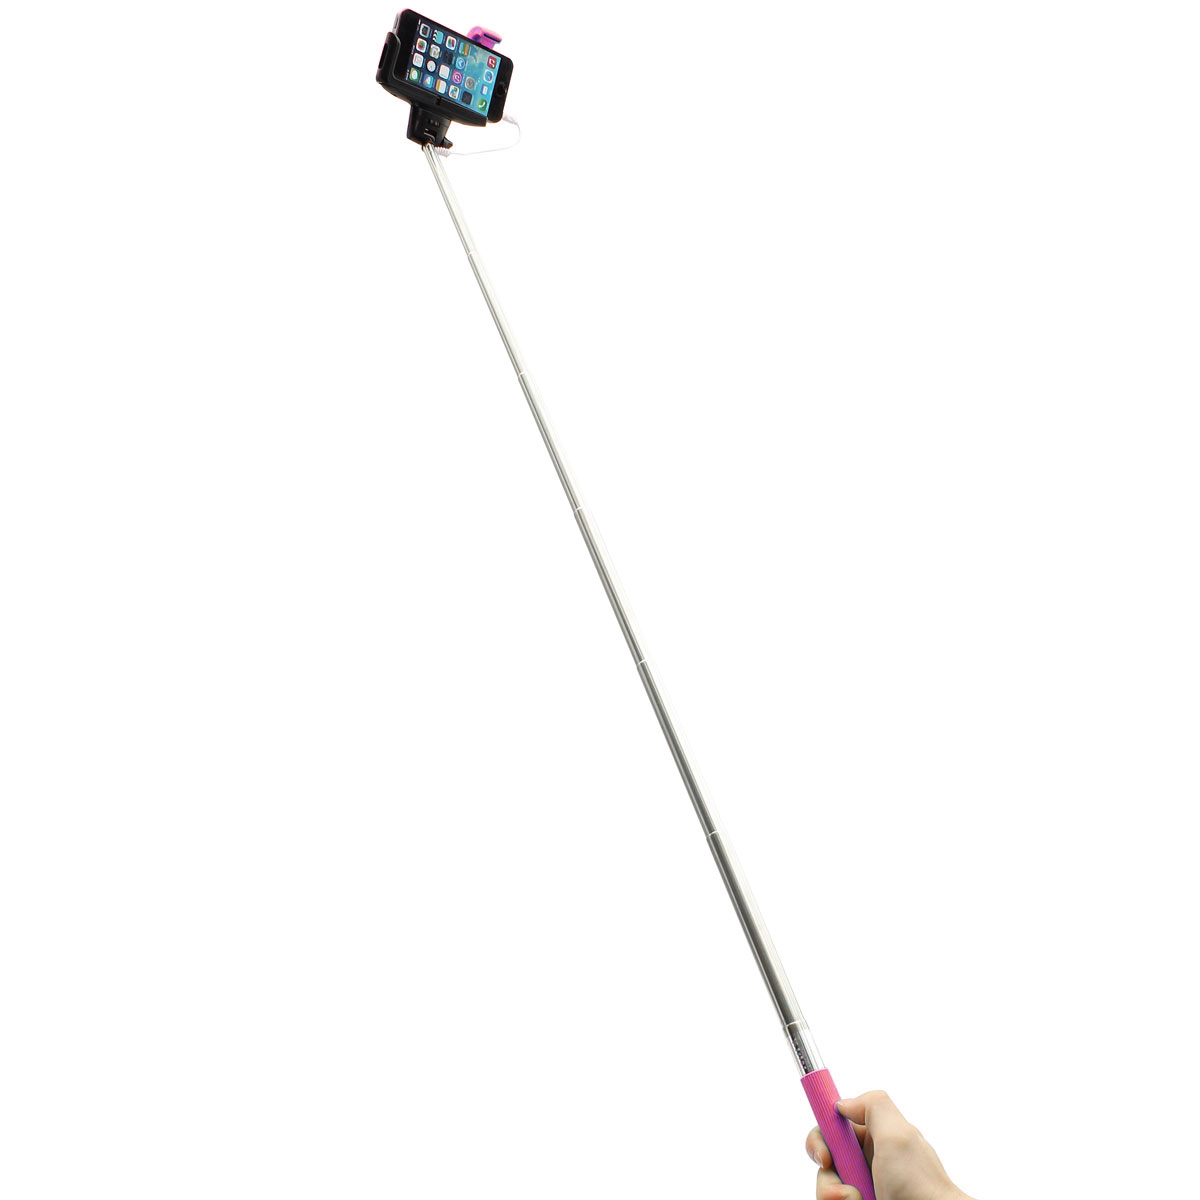 remote button wired handheld selfie stick monopod for iphone cellphone sony htc lazada malaysia. Black Bedroom Furniture Sets. Home Design Ideas